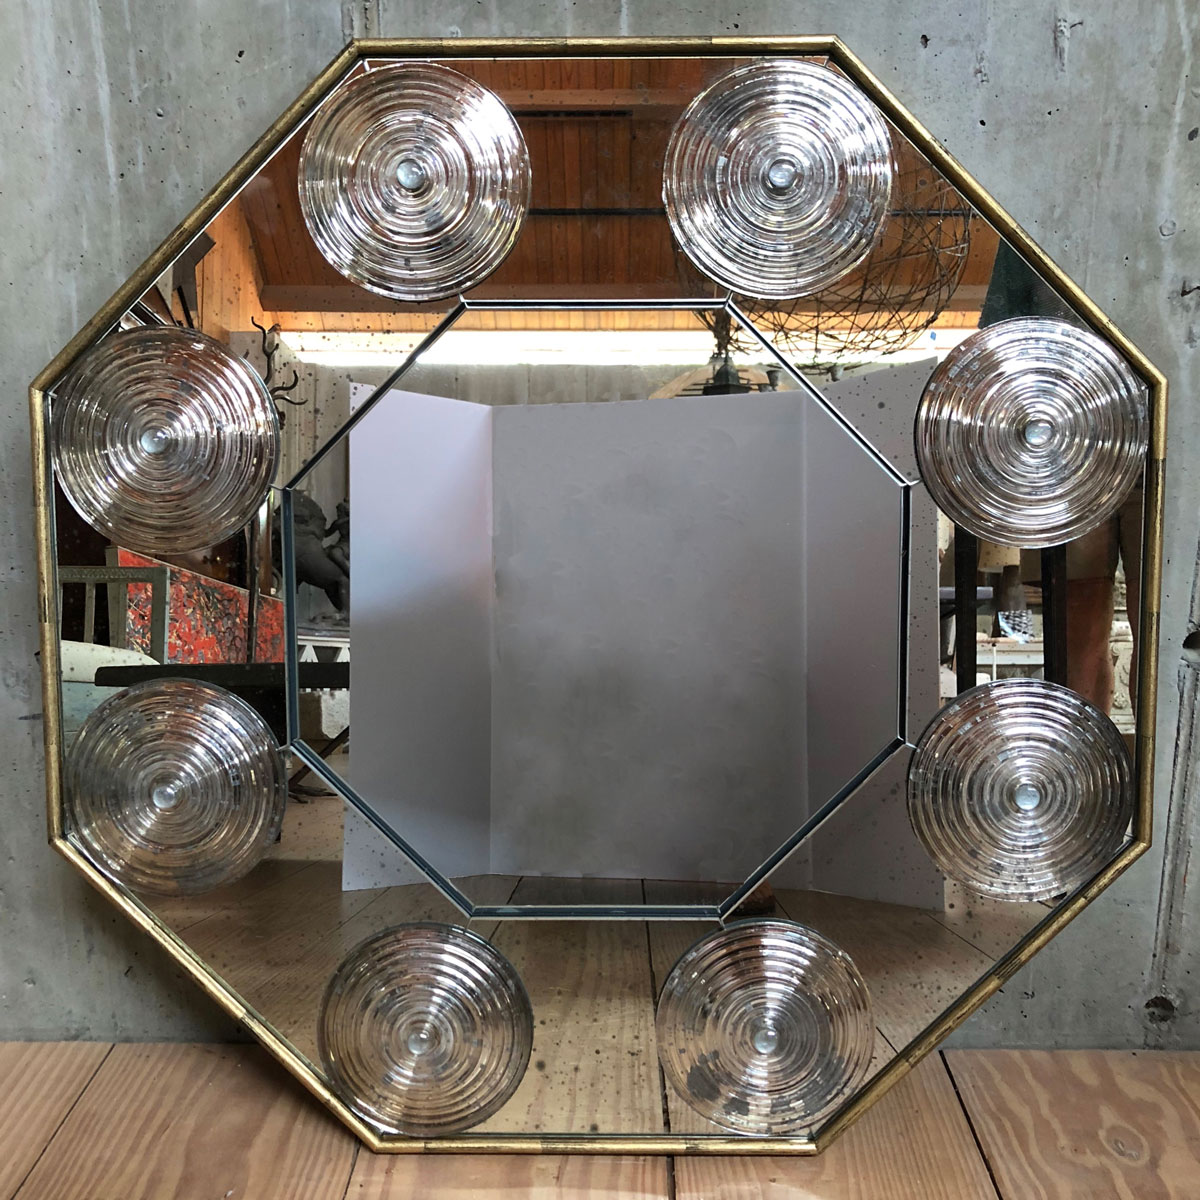 30″ Octagonal Bullseye Mirror with Gold Painted Wood Frame $2,350